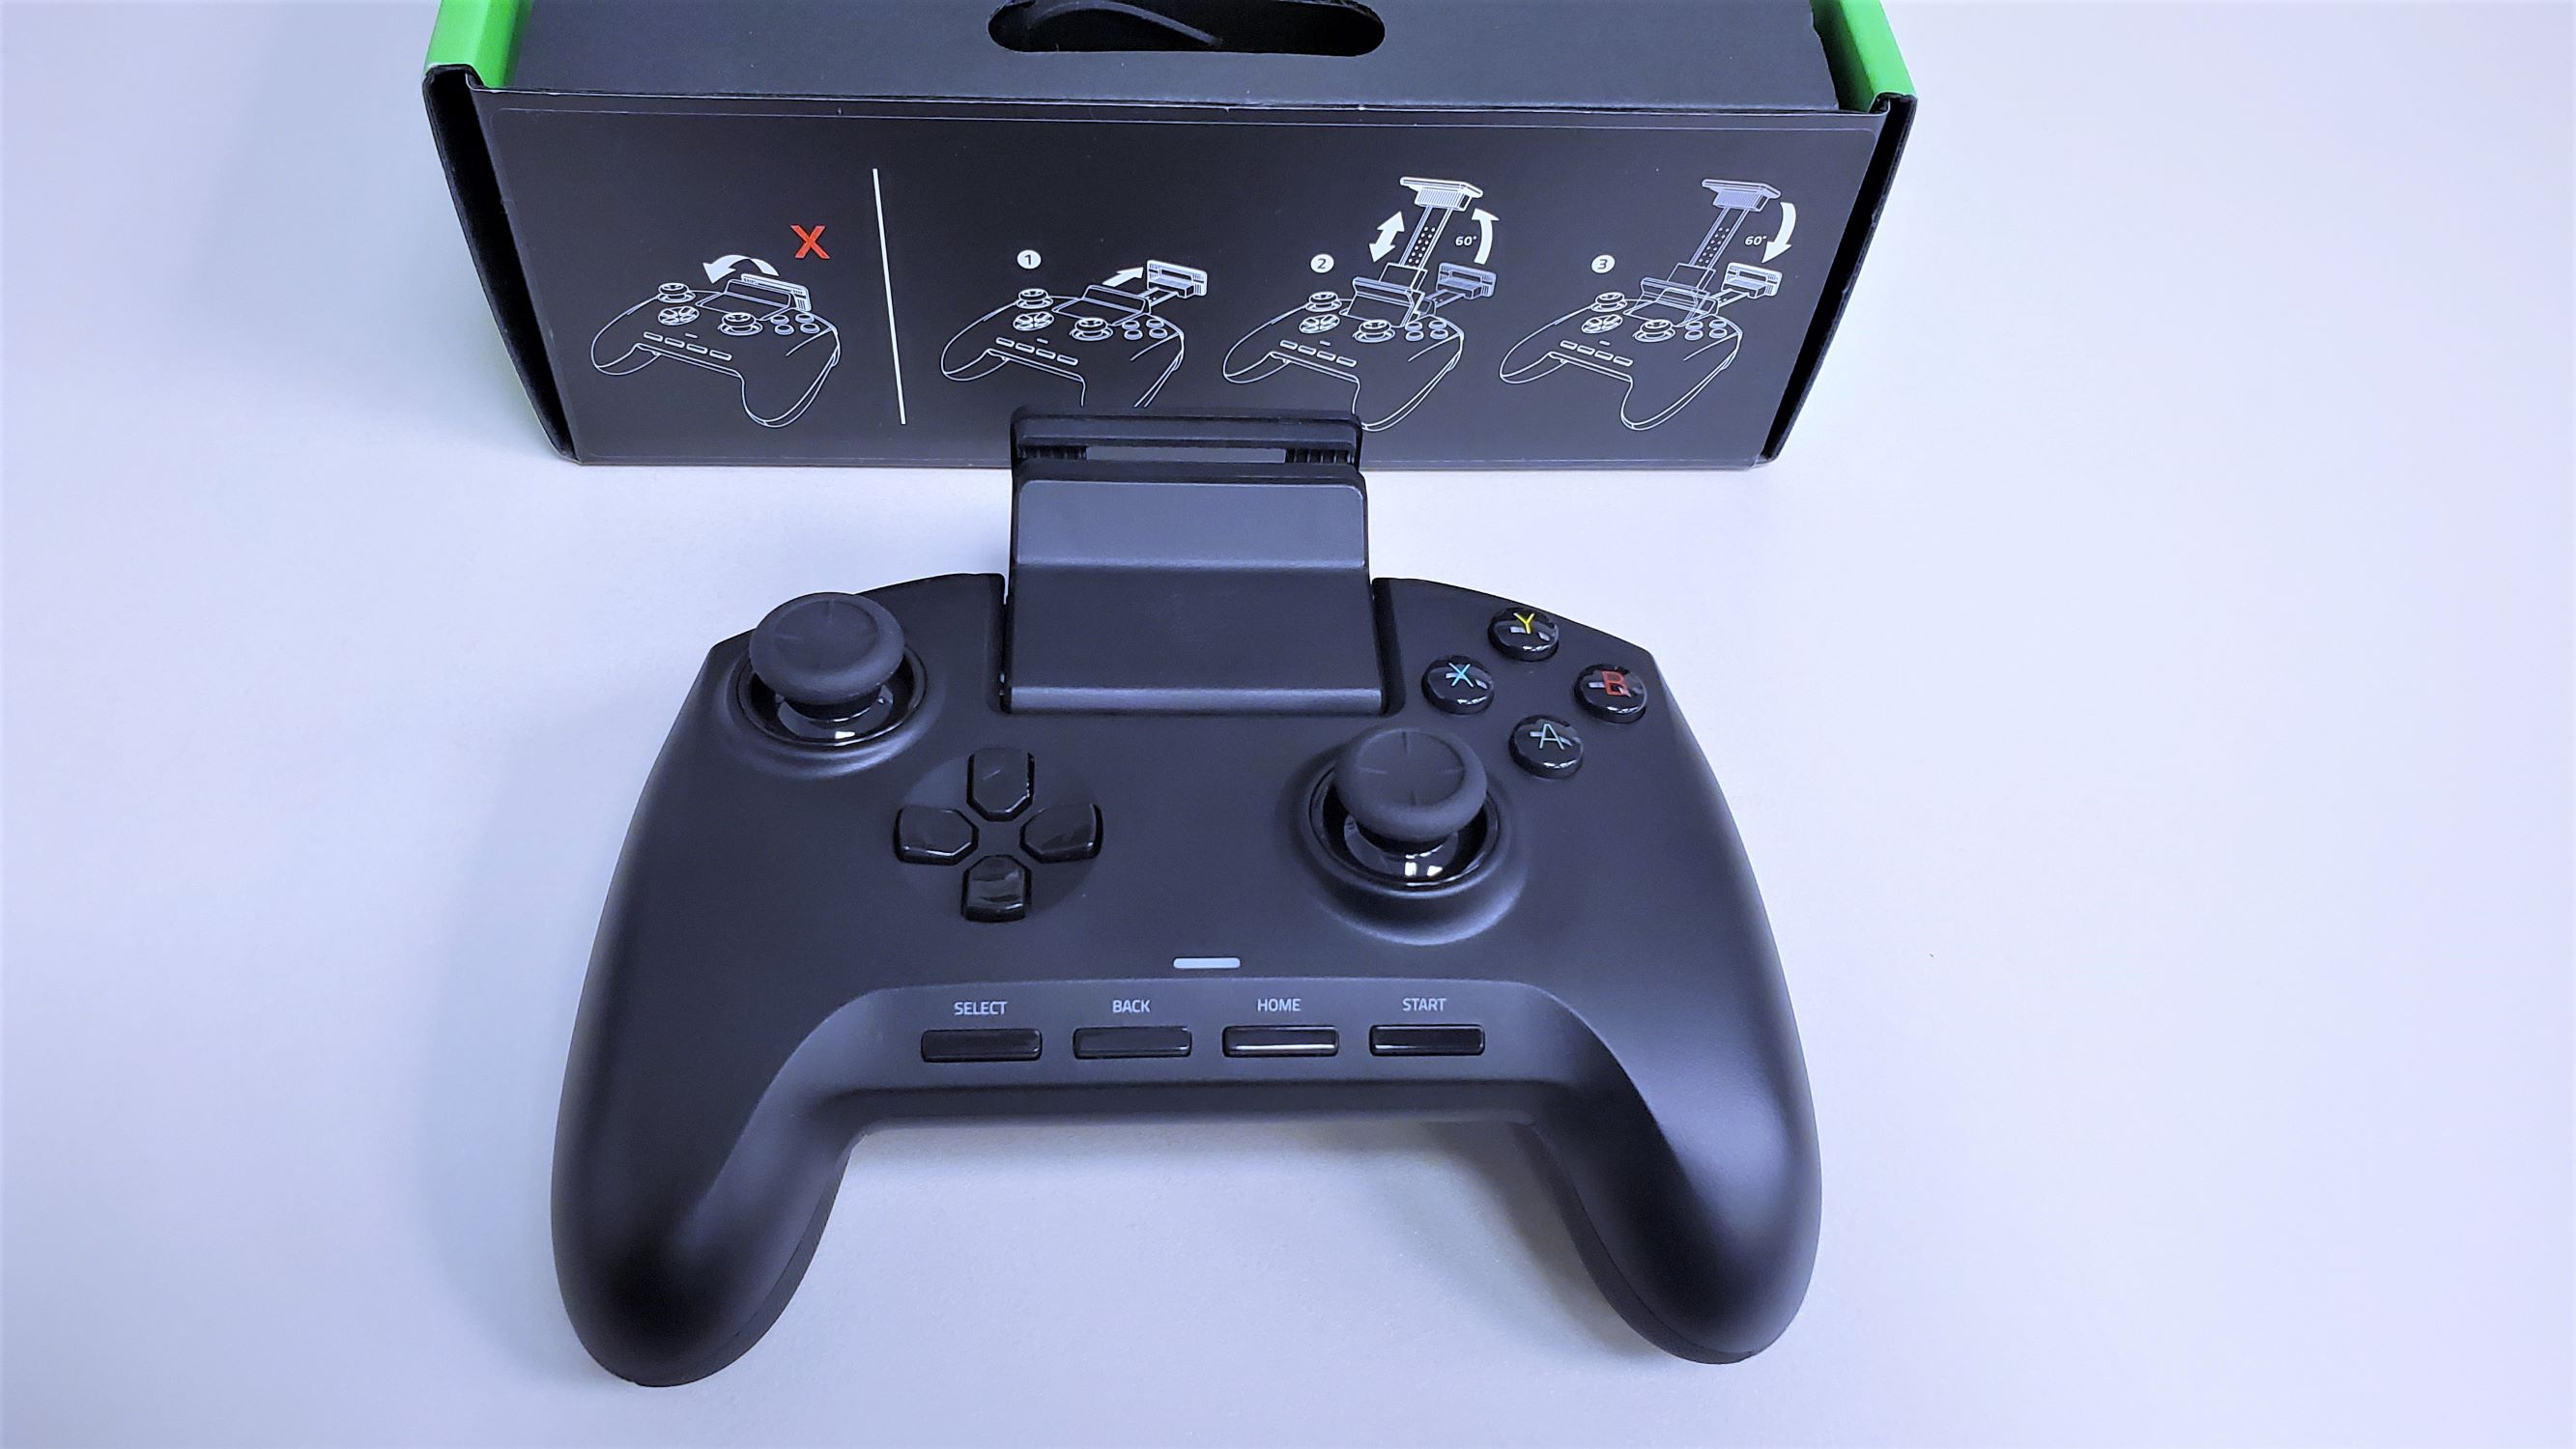 Review Razer Raiju Mobile Controller For Android And Pc Free delivery for many products! review razer raiju mobile controller